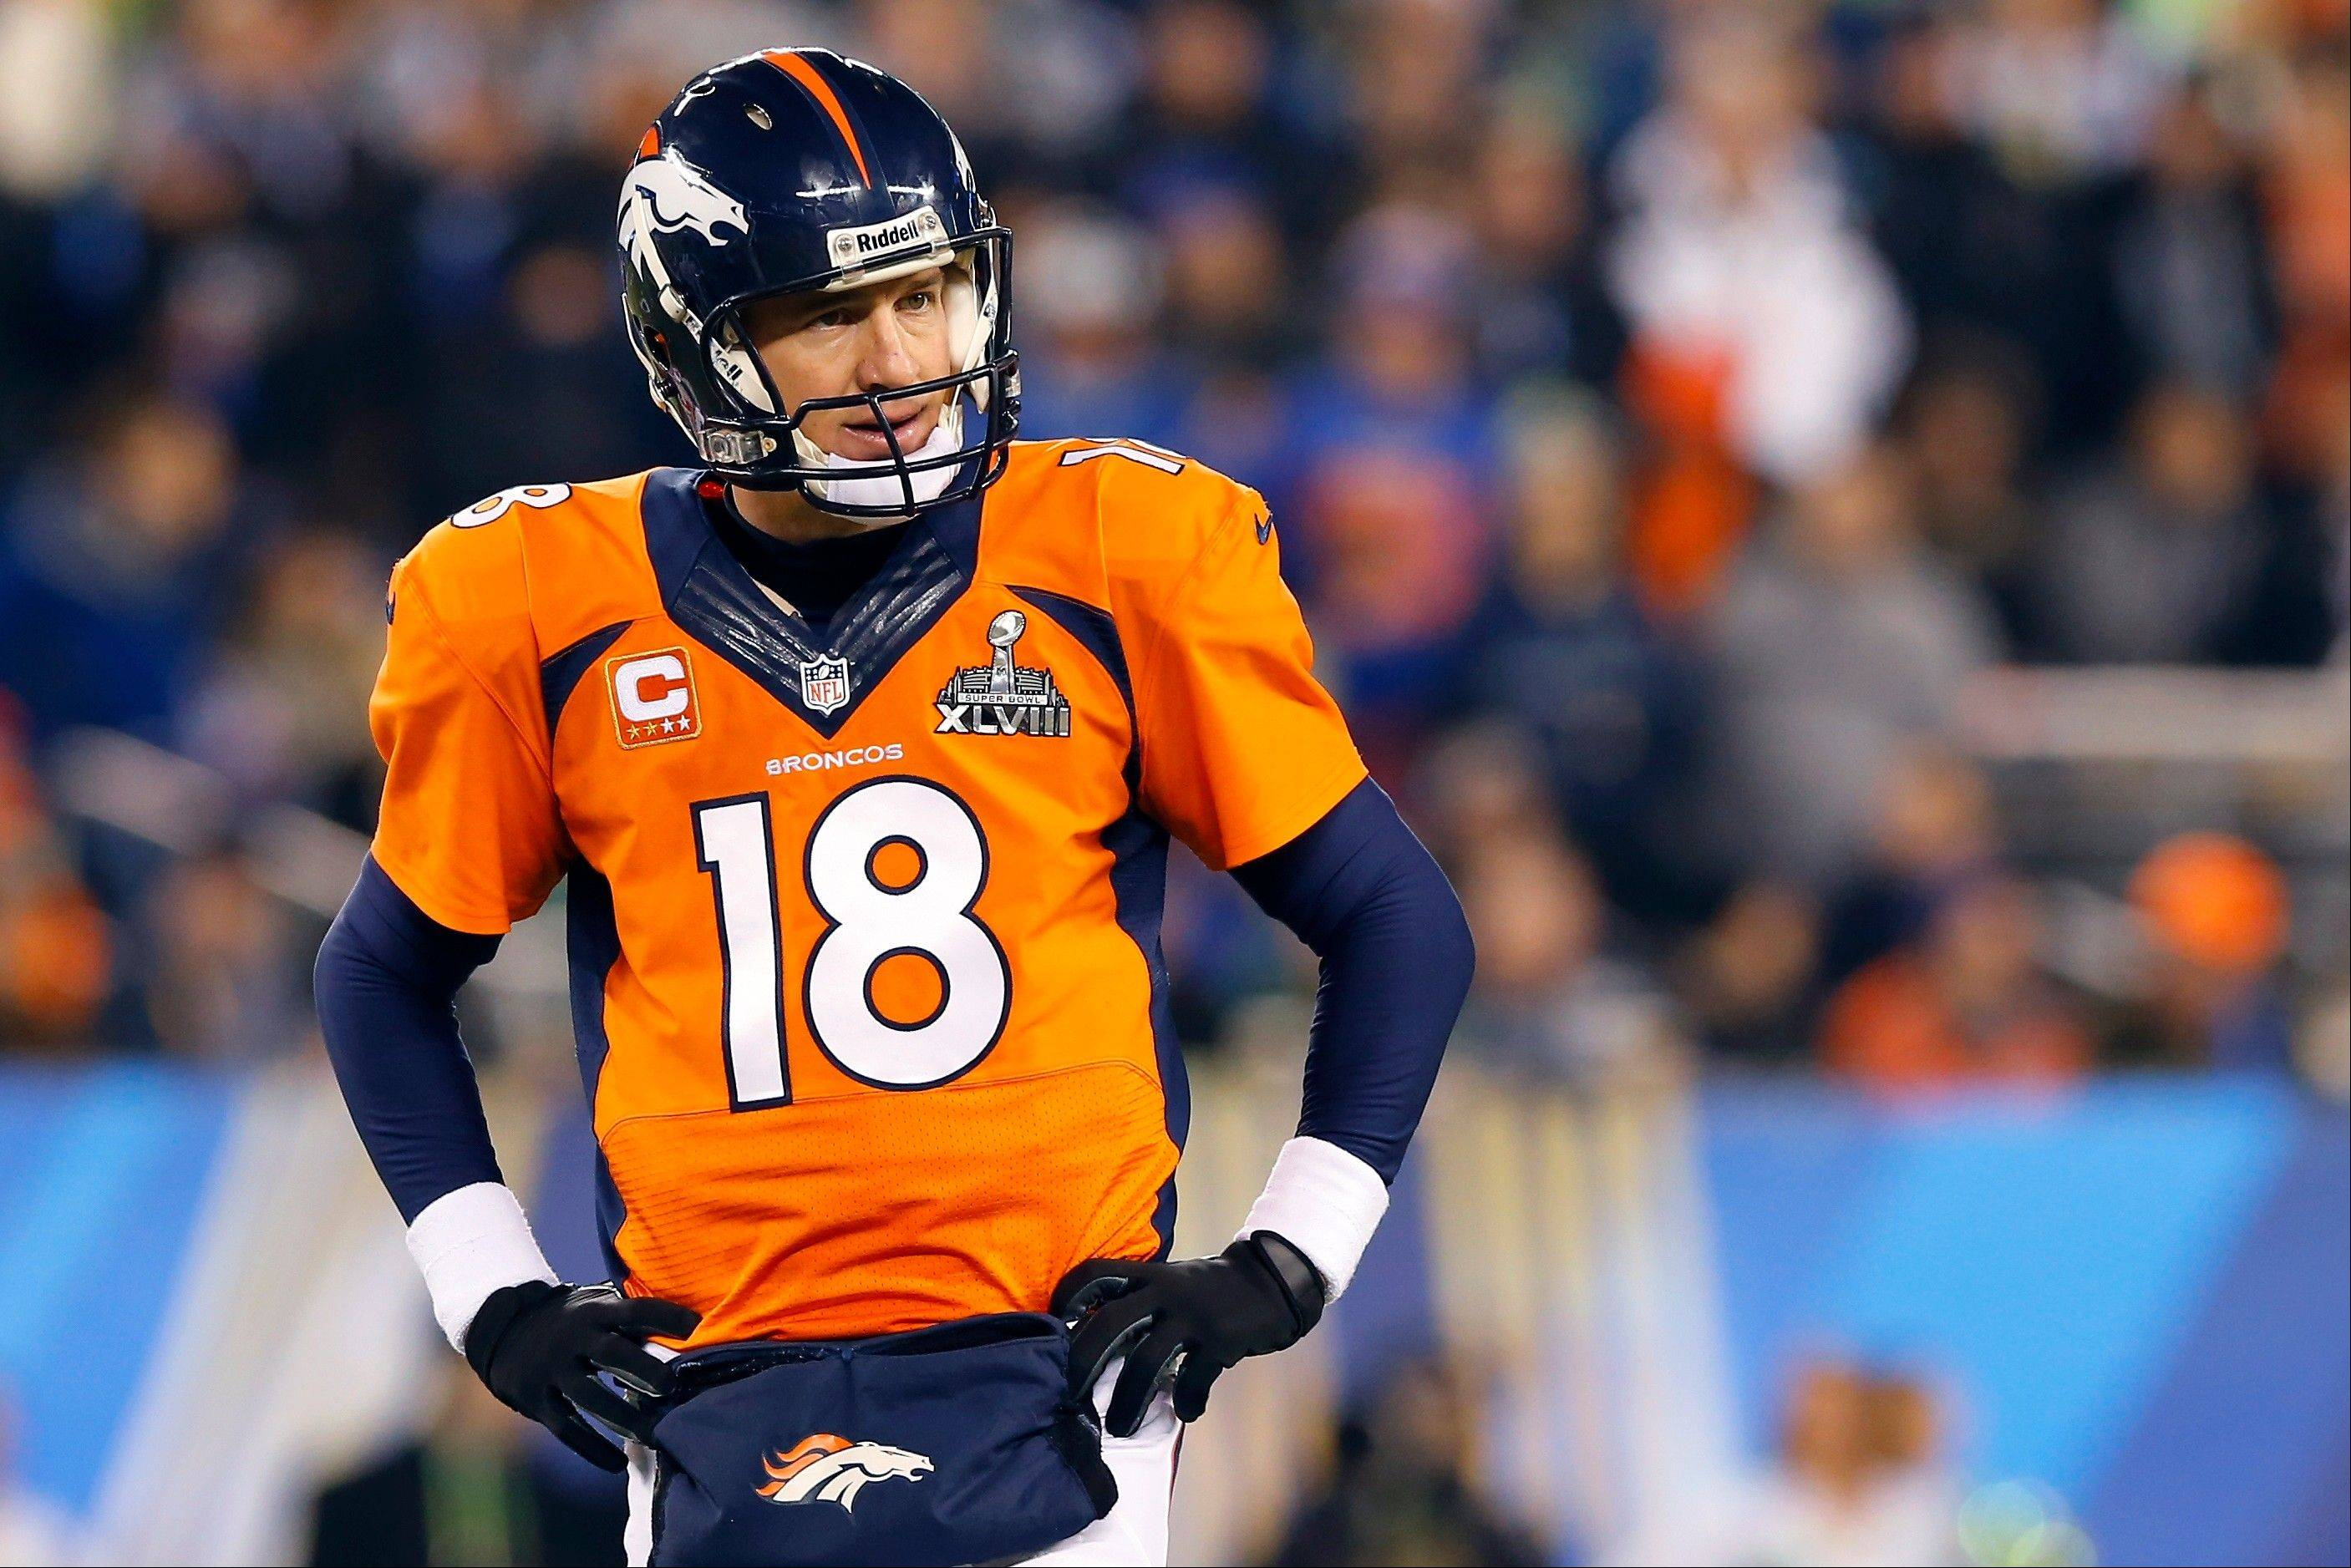 Denver Broncos' Peyton Manning pauses during the second half.